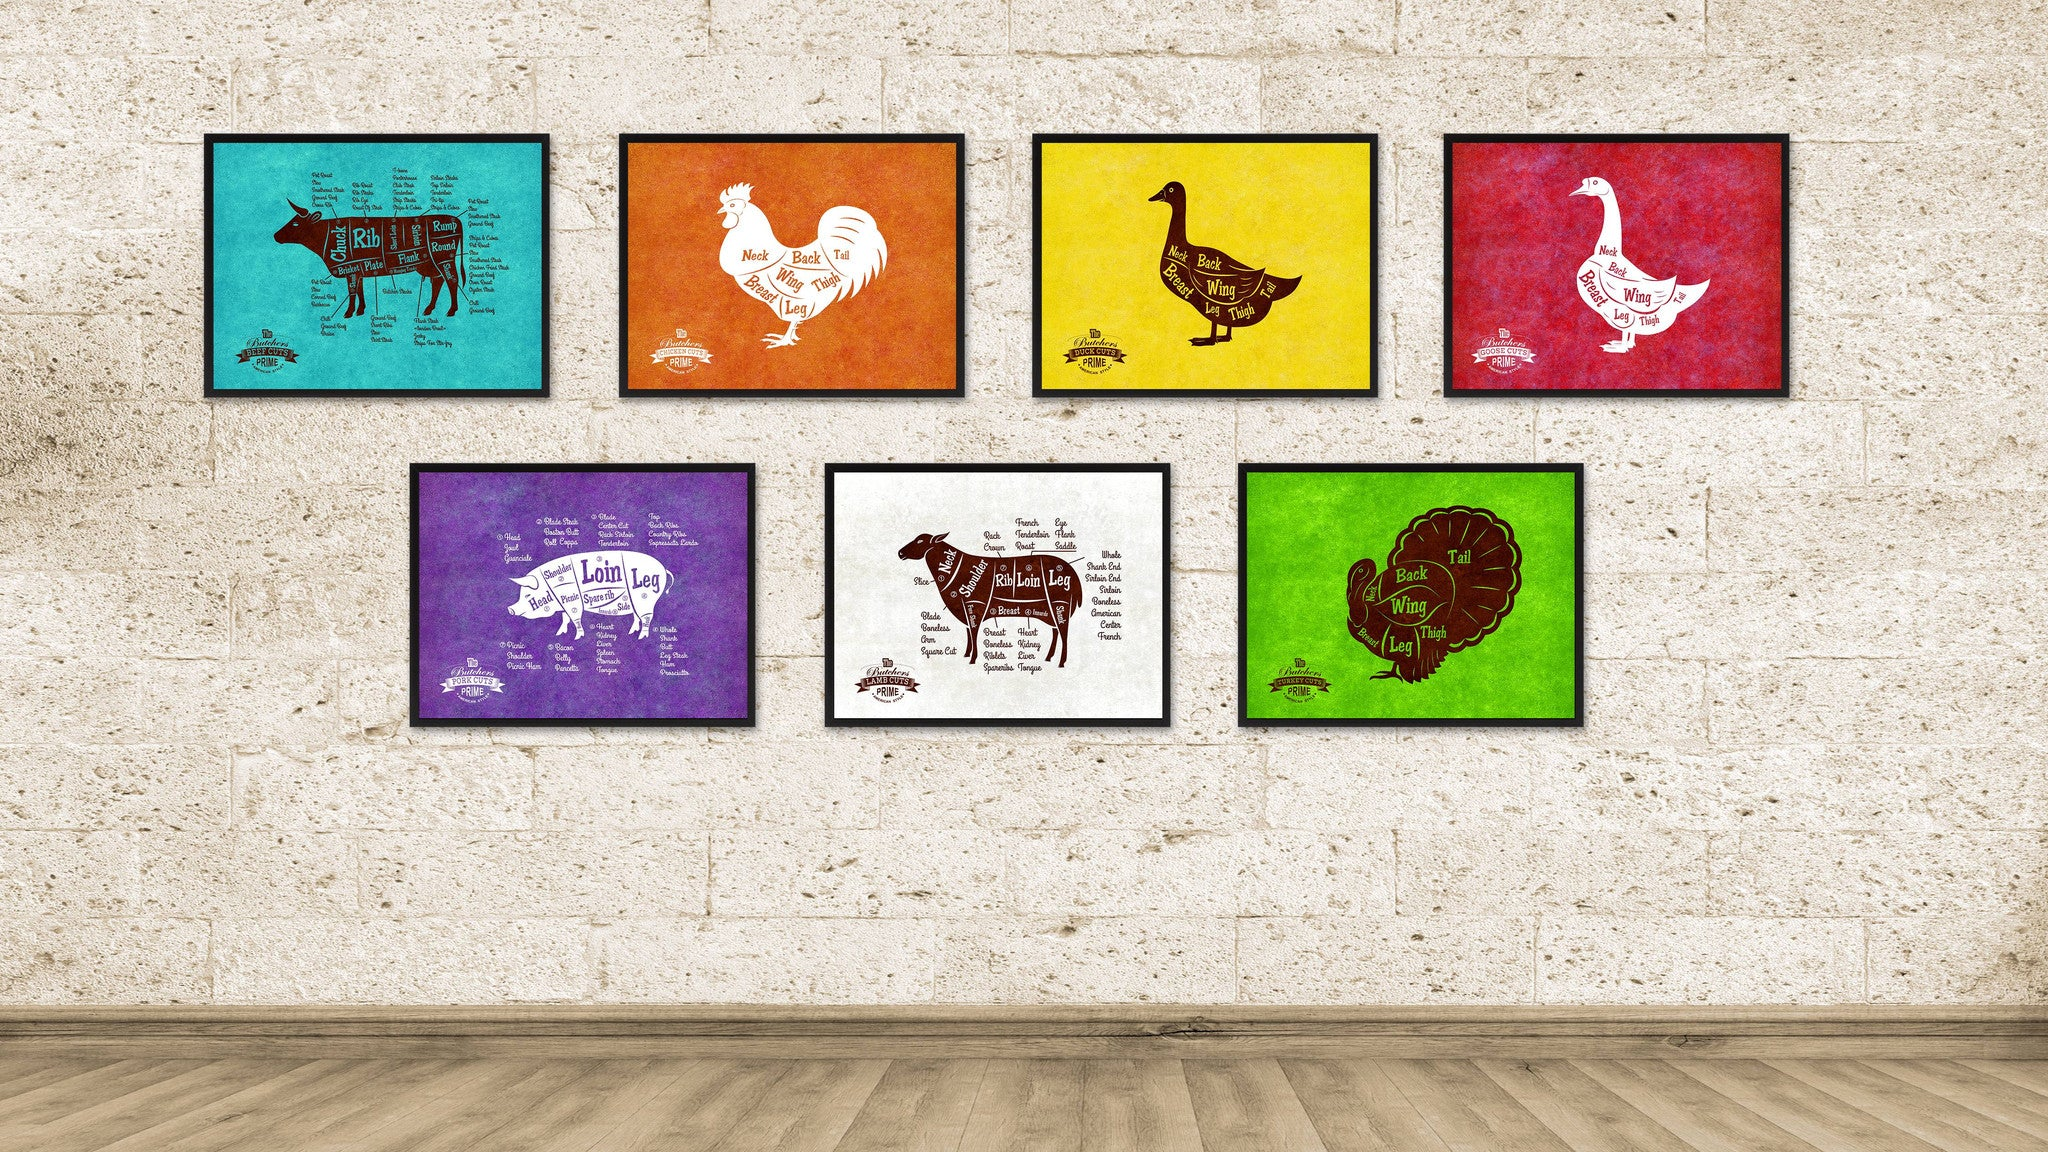 Duck Meat Cuts Butchers Chart Canvas Print Picture Frame Home Decor Wall Art Gifts